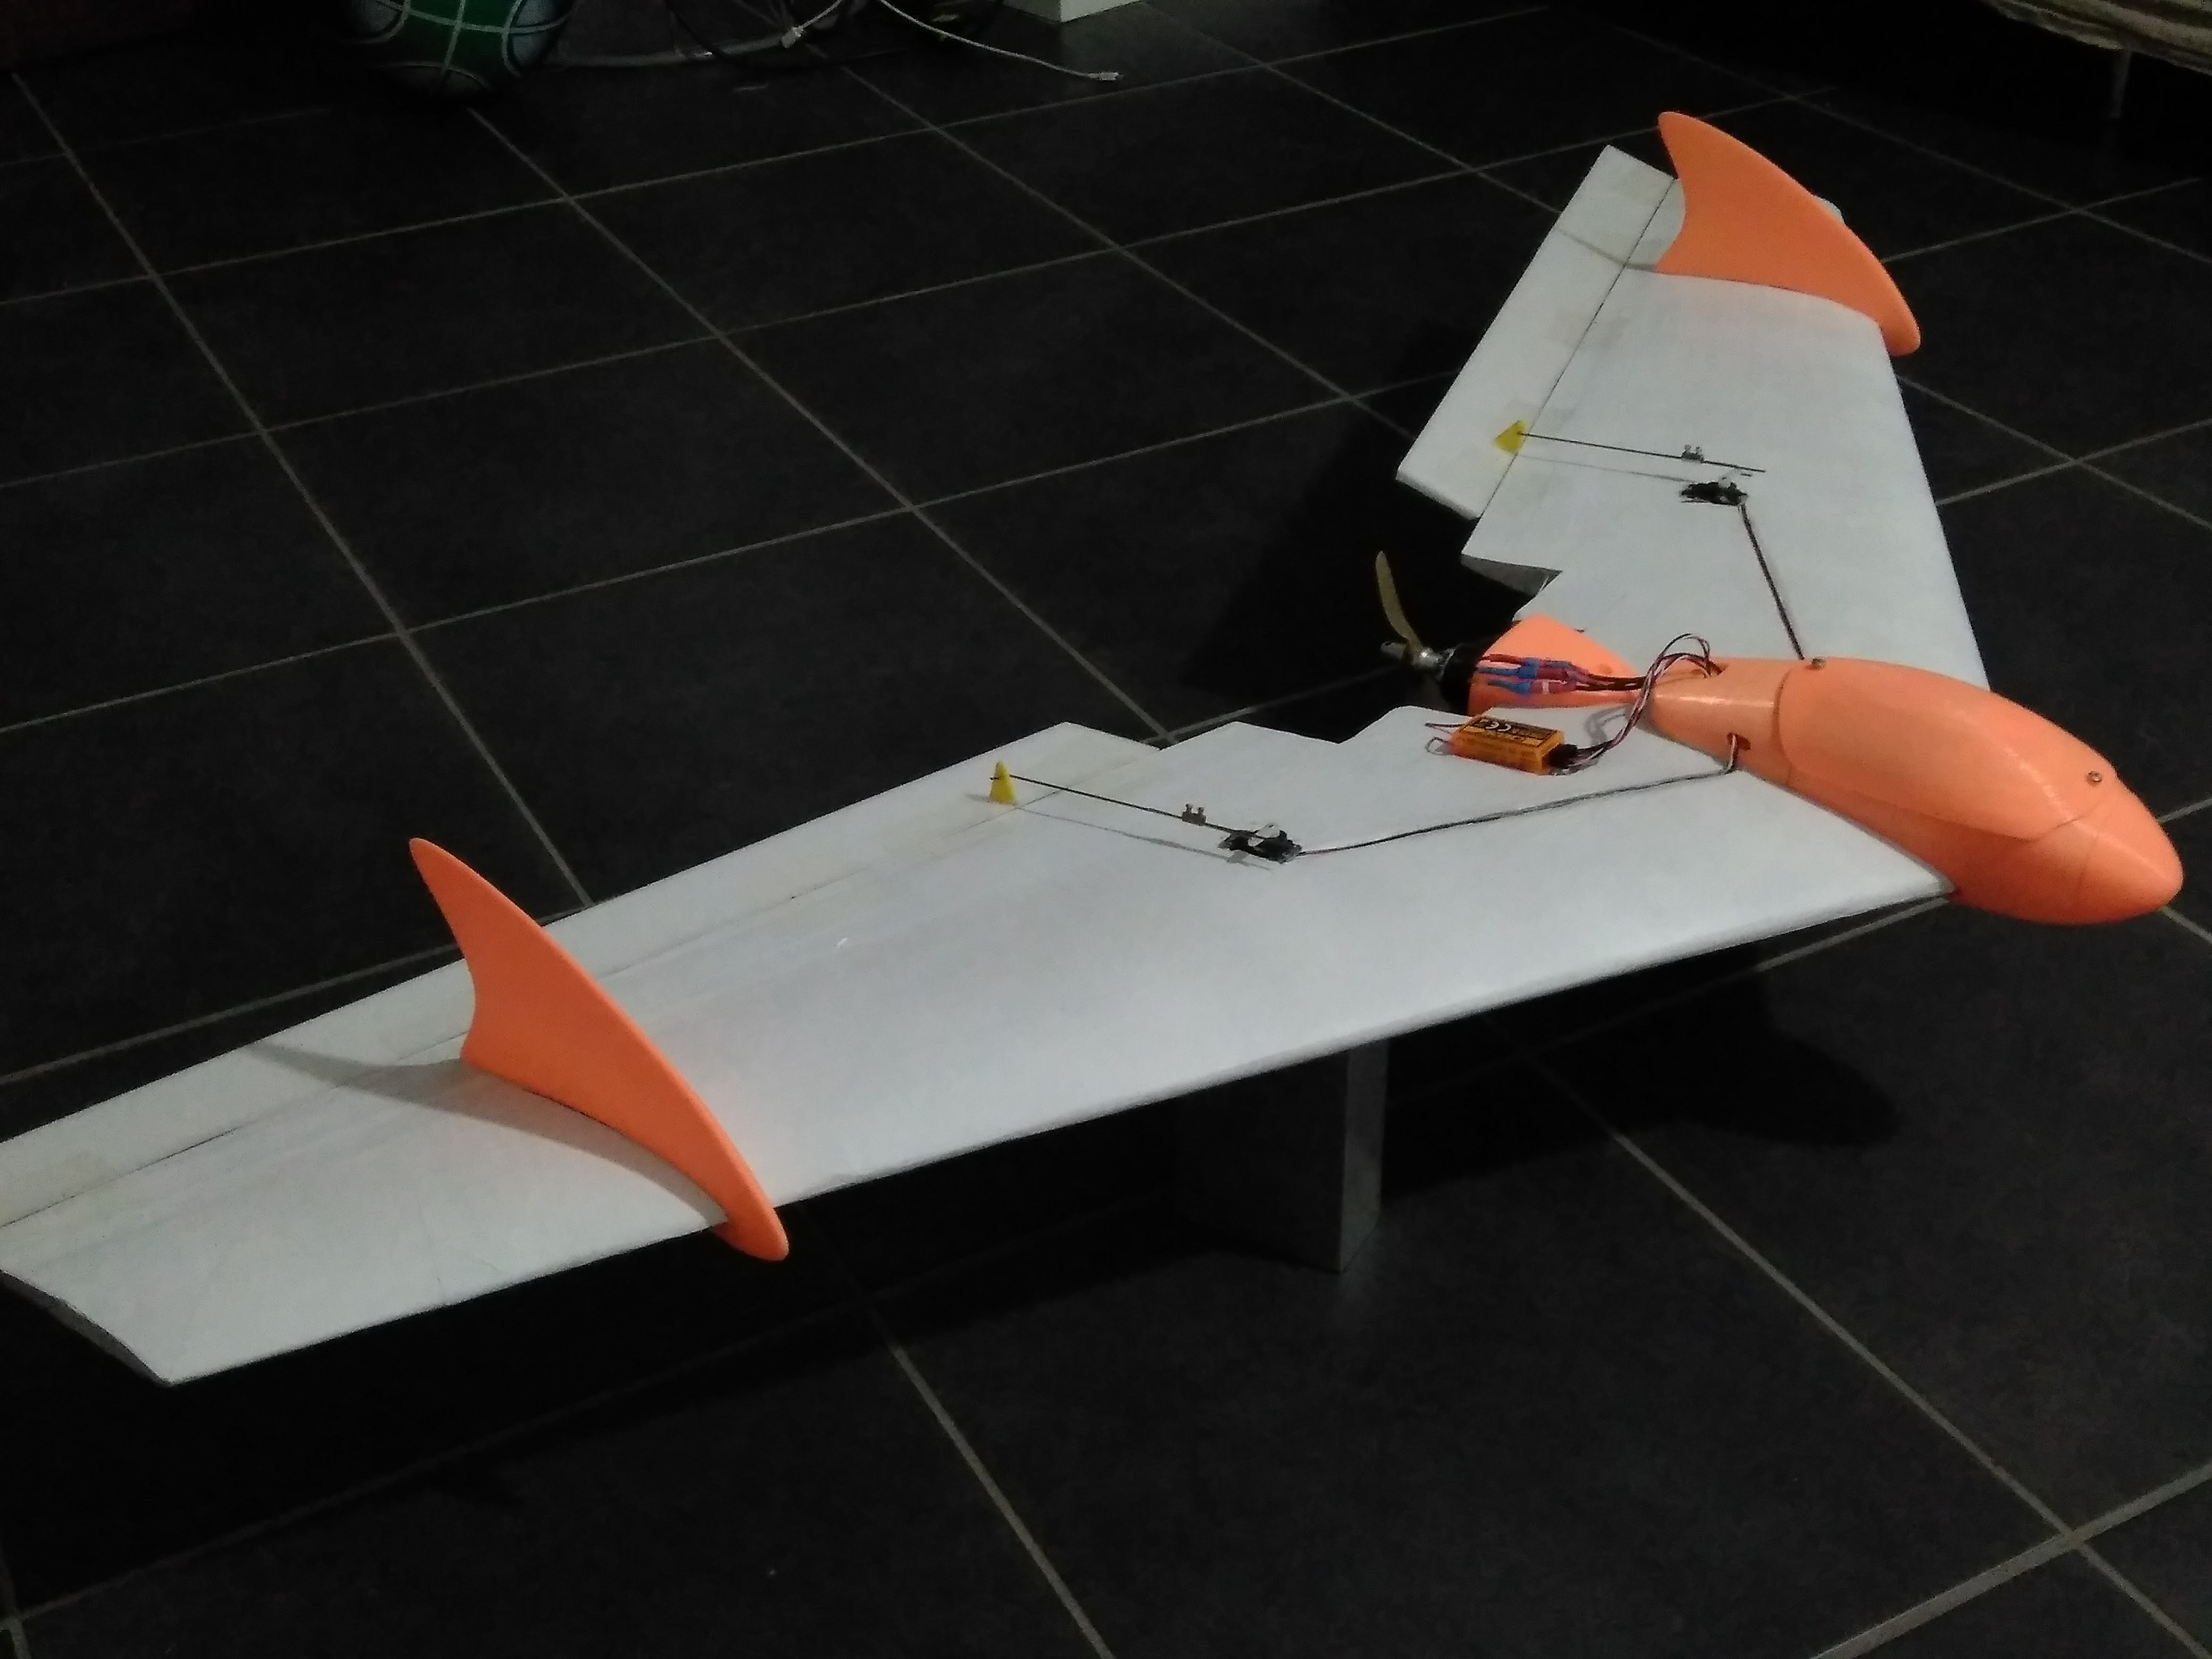 fuselage, fins and motor mount for TZAGI flying wing by